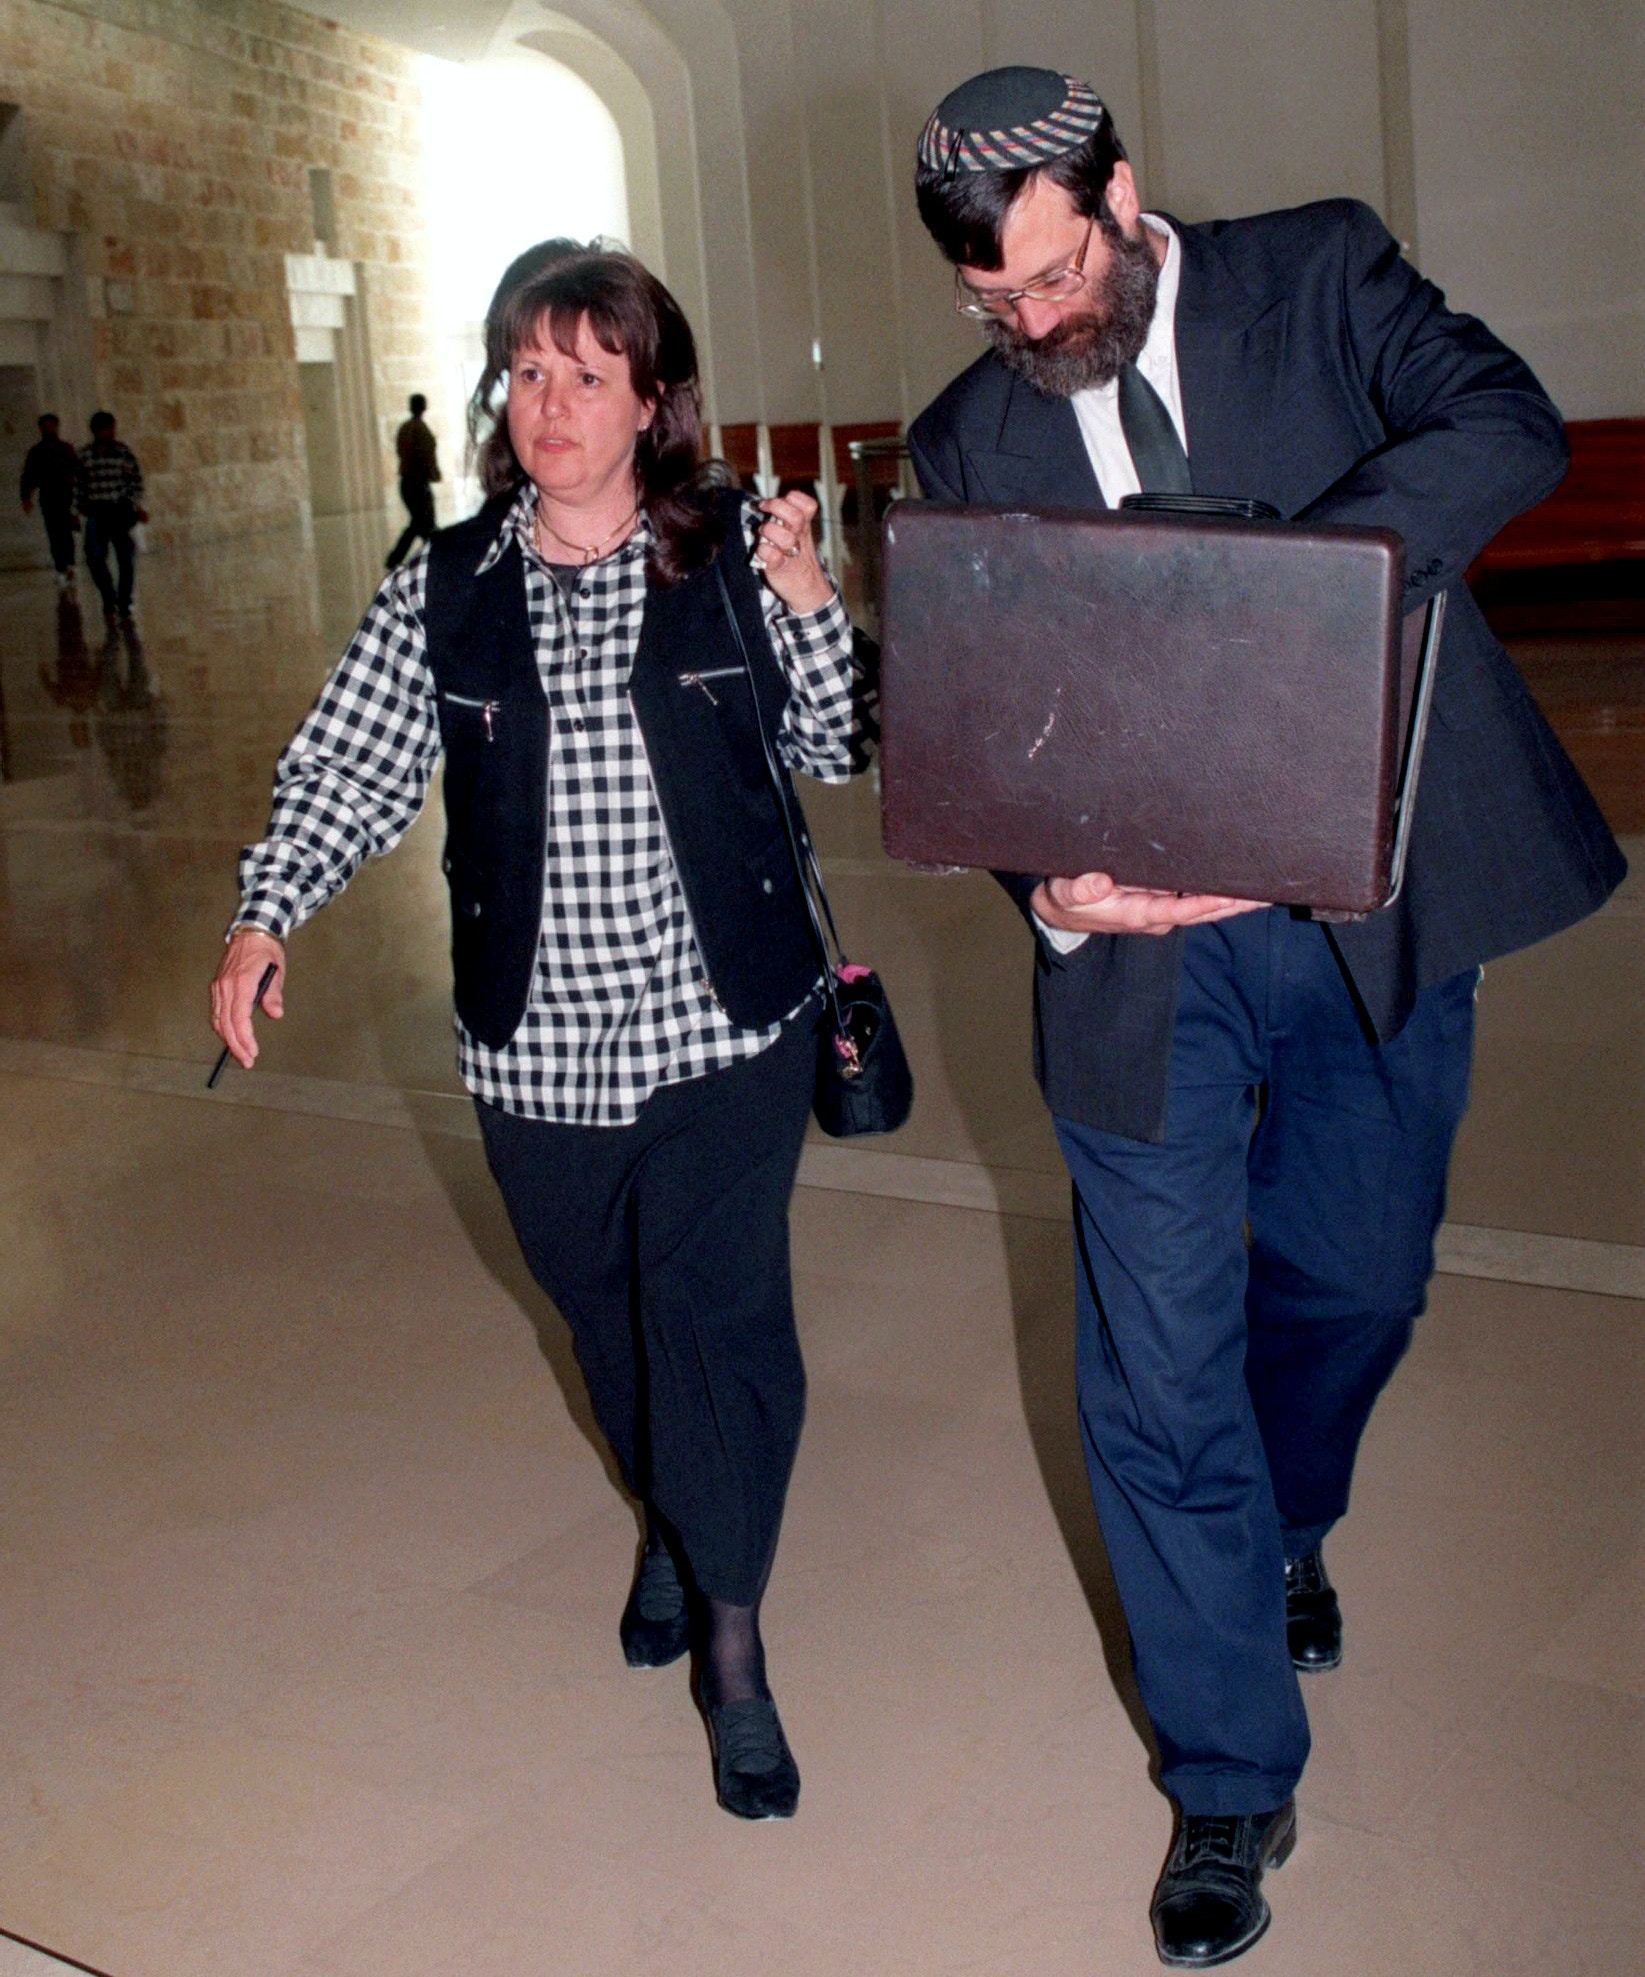 Esther Pollard, wife of convicted spy Jonathan Pollard, walks with her lawyer Baruch Ben-Yosef in the Supreme Court November 16. Jonathan Pollard petitioned the high court to block the release of hundreds of Palestinian prisoners being held in Israeli jails until he is freed. The petition said that U.S. President Bill Clinton promised during lat month's Wye Middle East peace summit to free Pollard in exchange for Israel's release of Palestinian prisoners. JWH/ME - RP1DRIFSOHAB